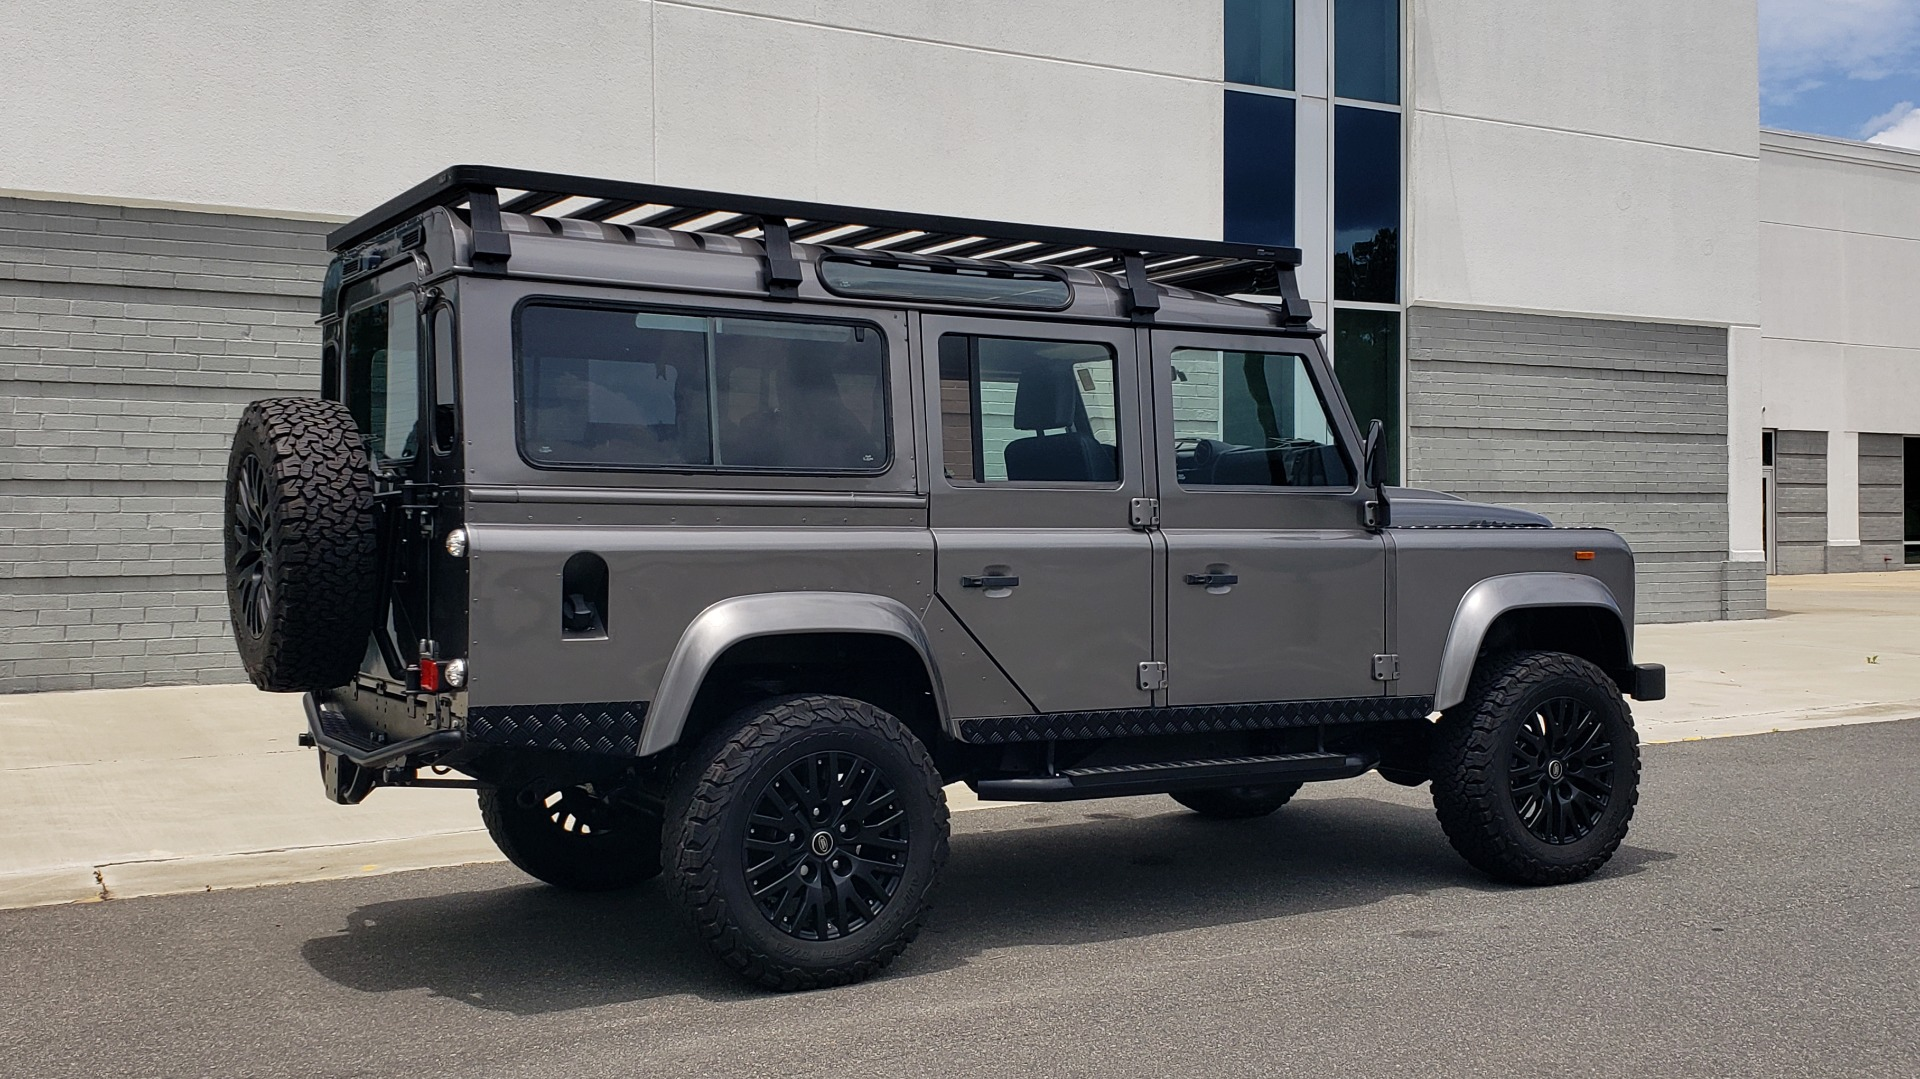 Used 1988 Land Rover DEFENDER 110 CUSTOM 4X4 / LS V8 / PUSH BUTTON AUTO / LEATHER / ROOF RACK for sale $147,888 at Formula Imports in Charlotte NC 28227 21